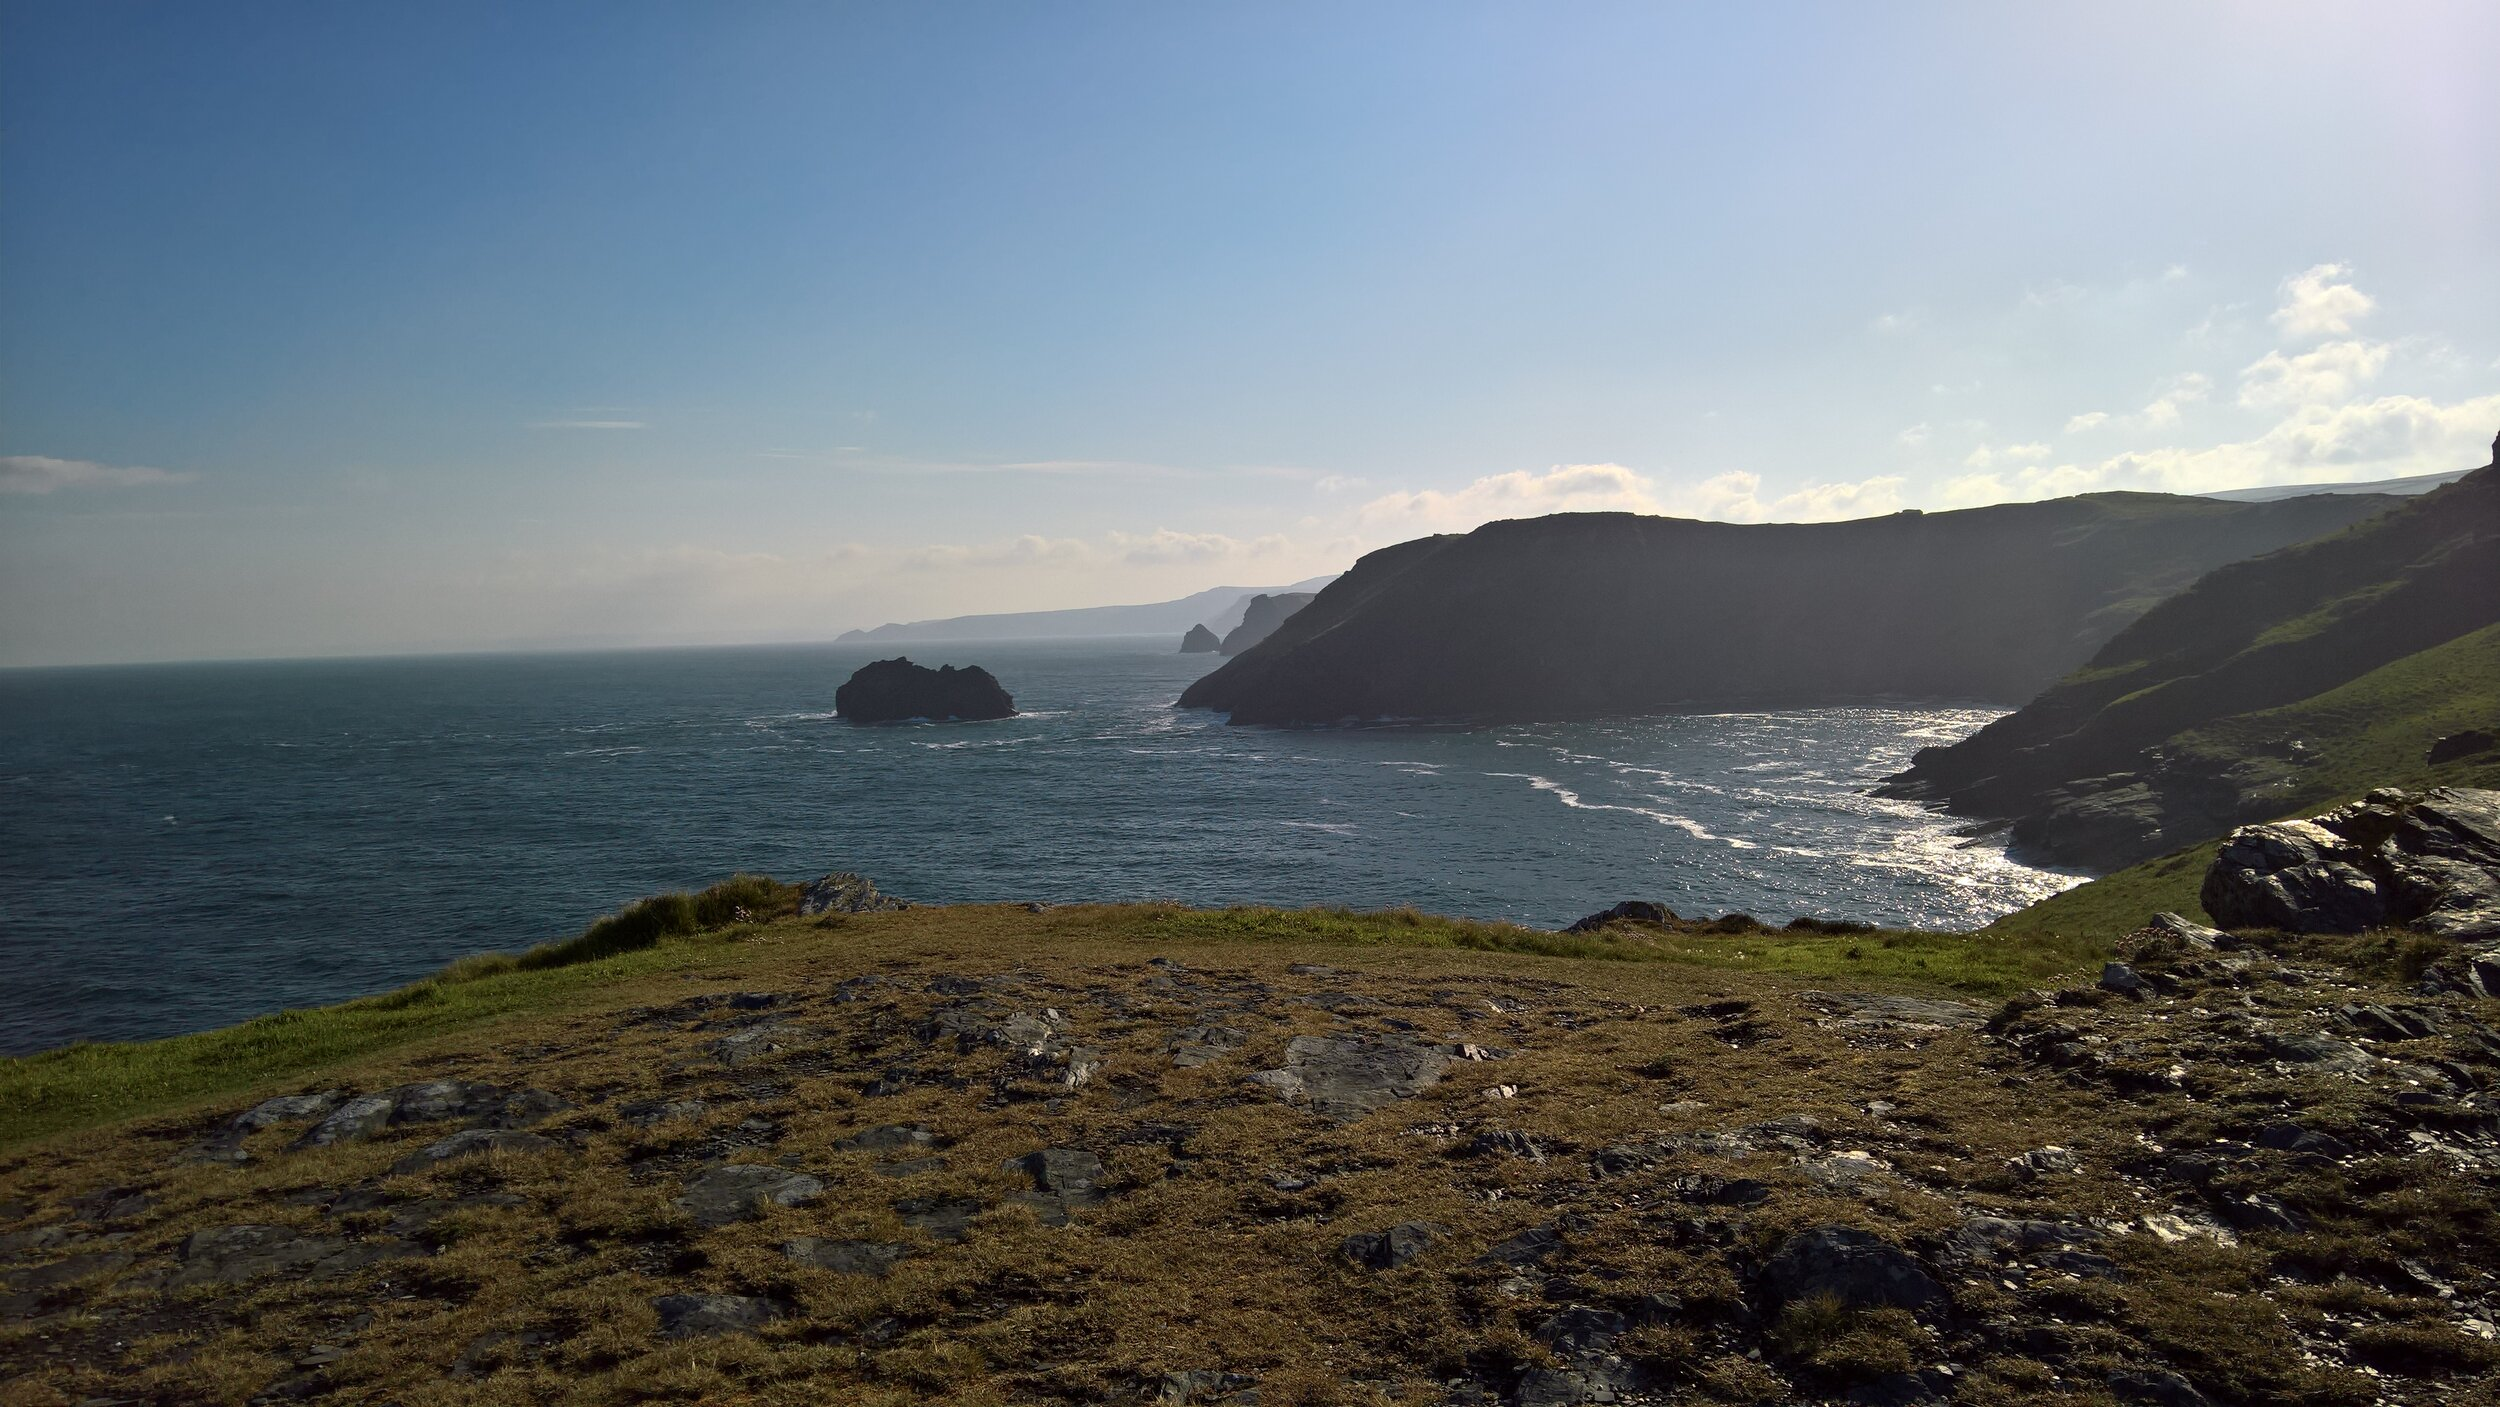 Views from Tintagel, Cornwall.